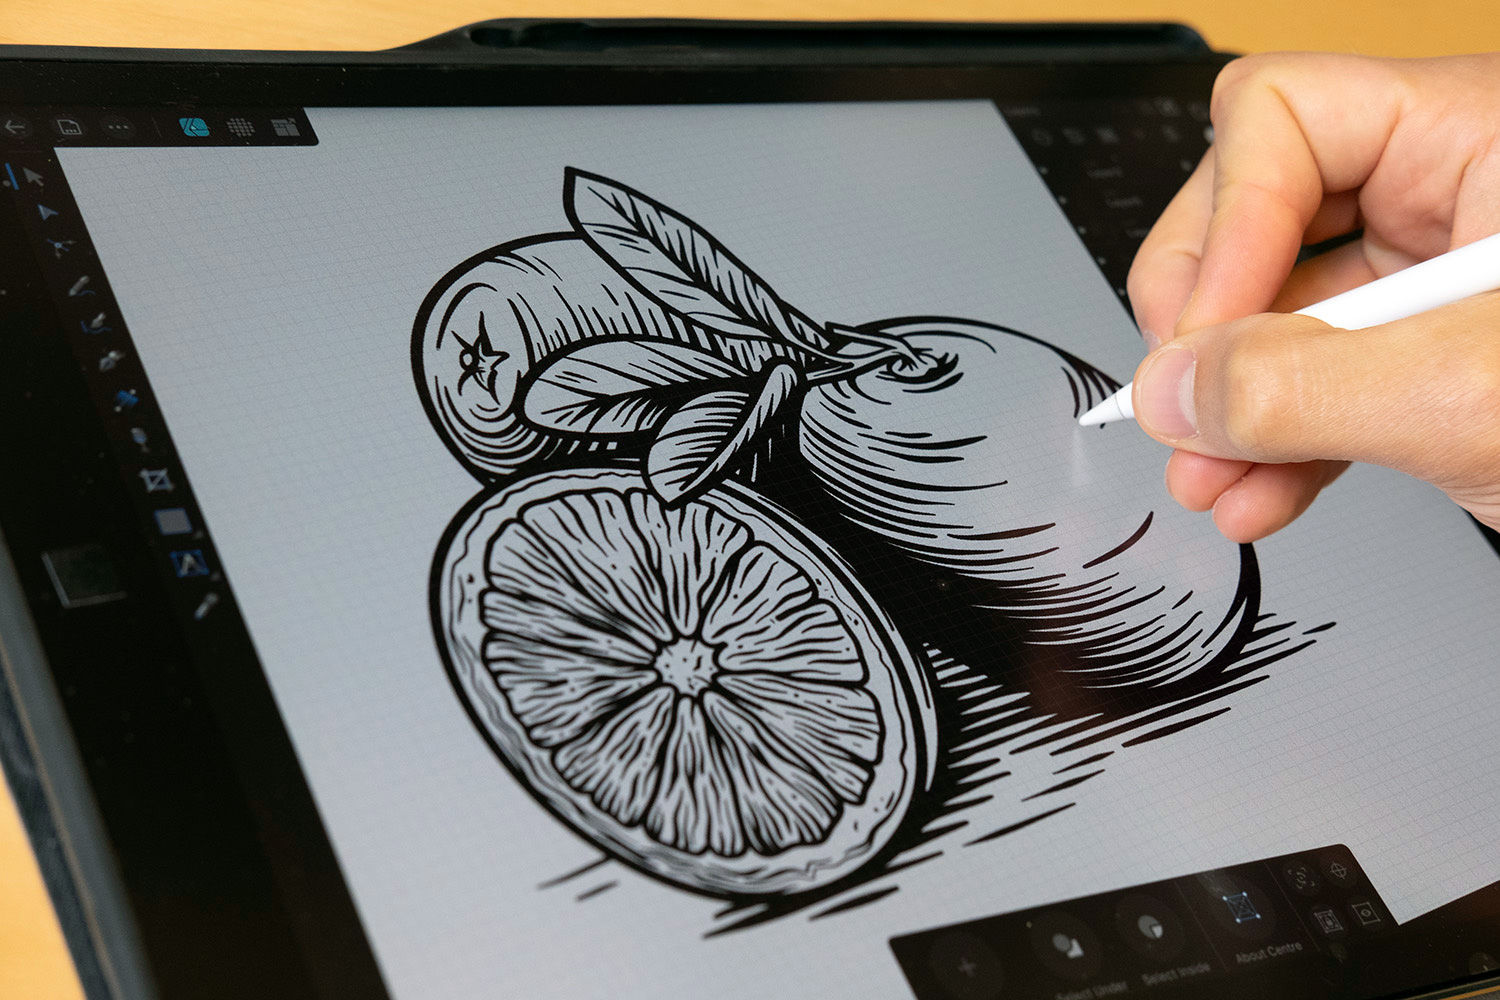 Affinity Designer for iPad review – the best vector art and design